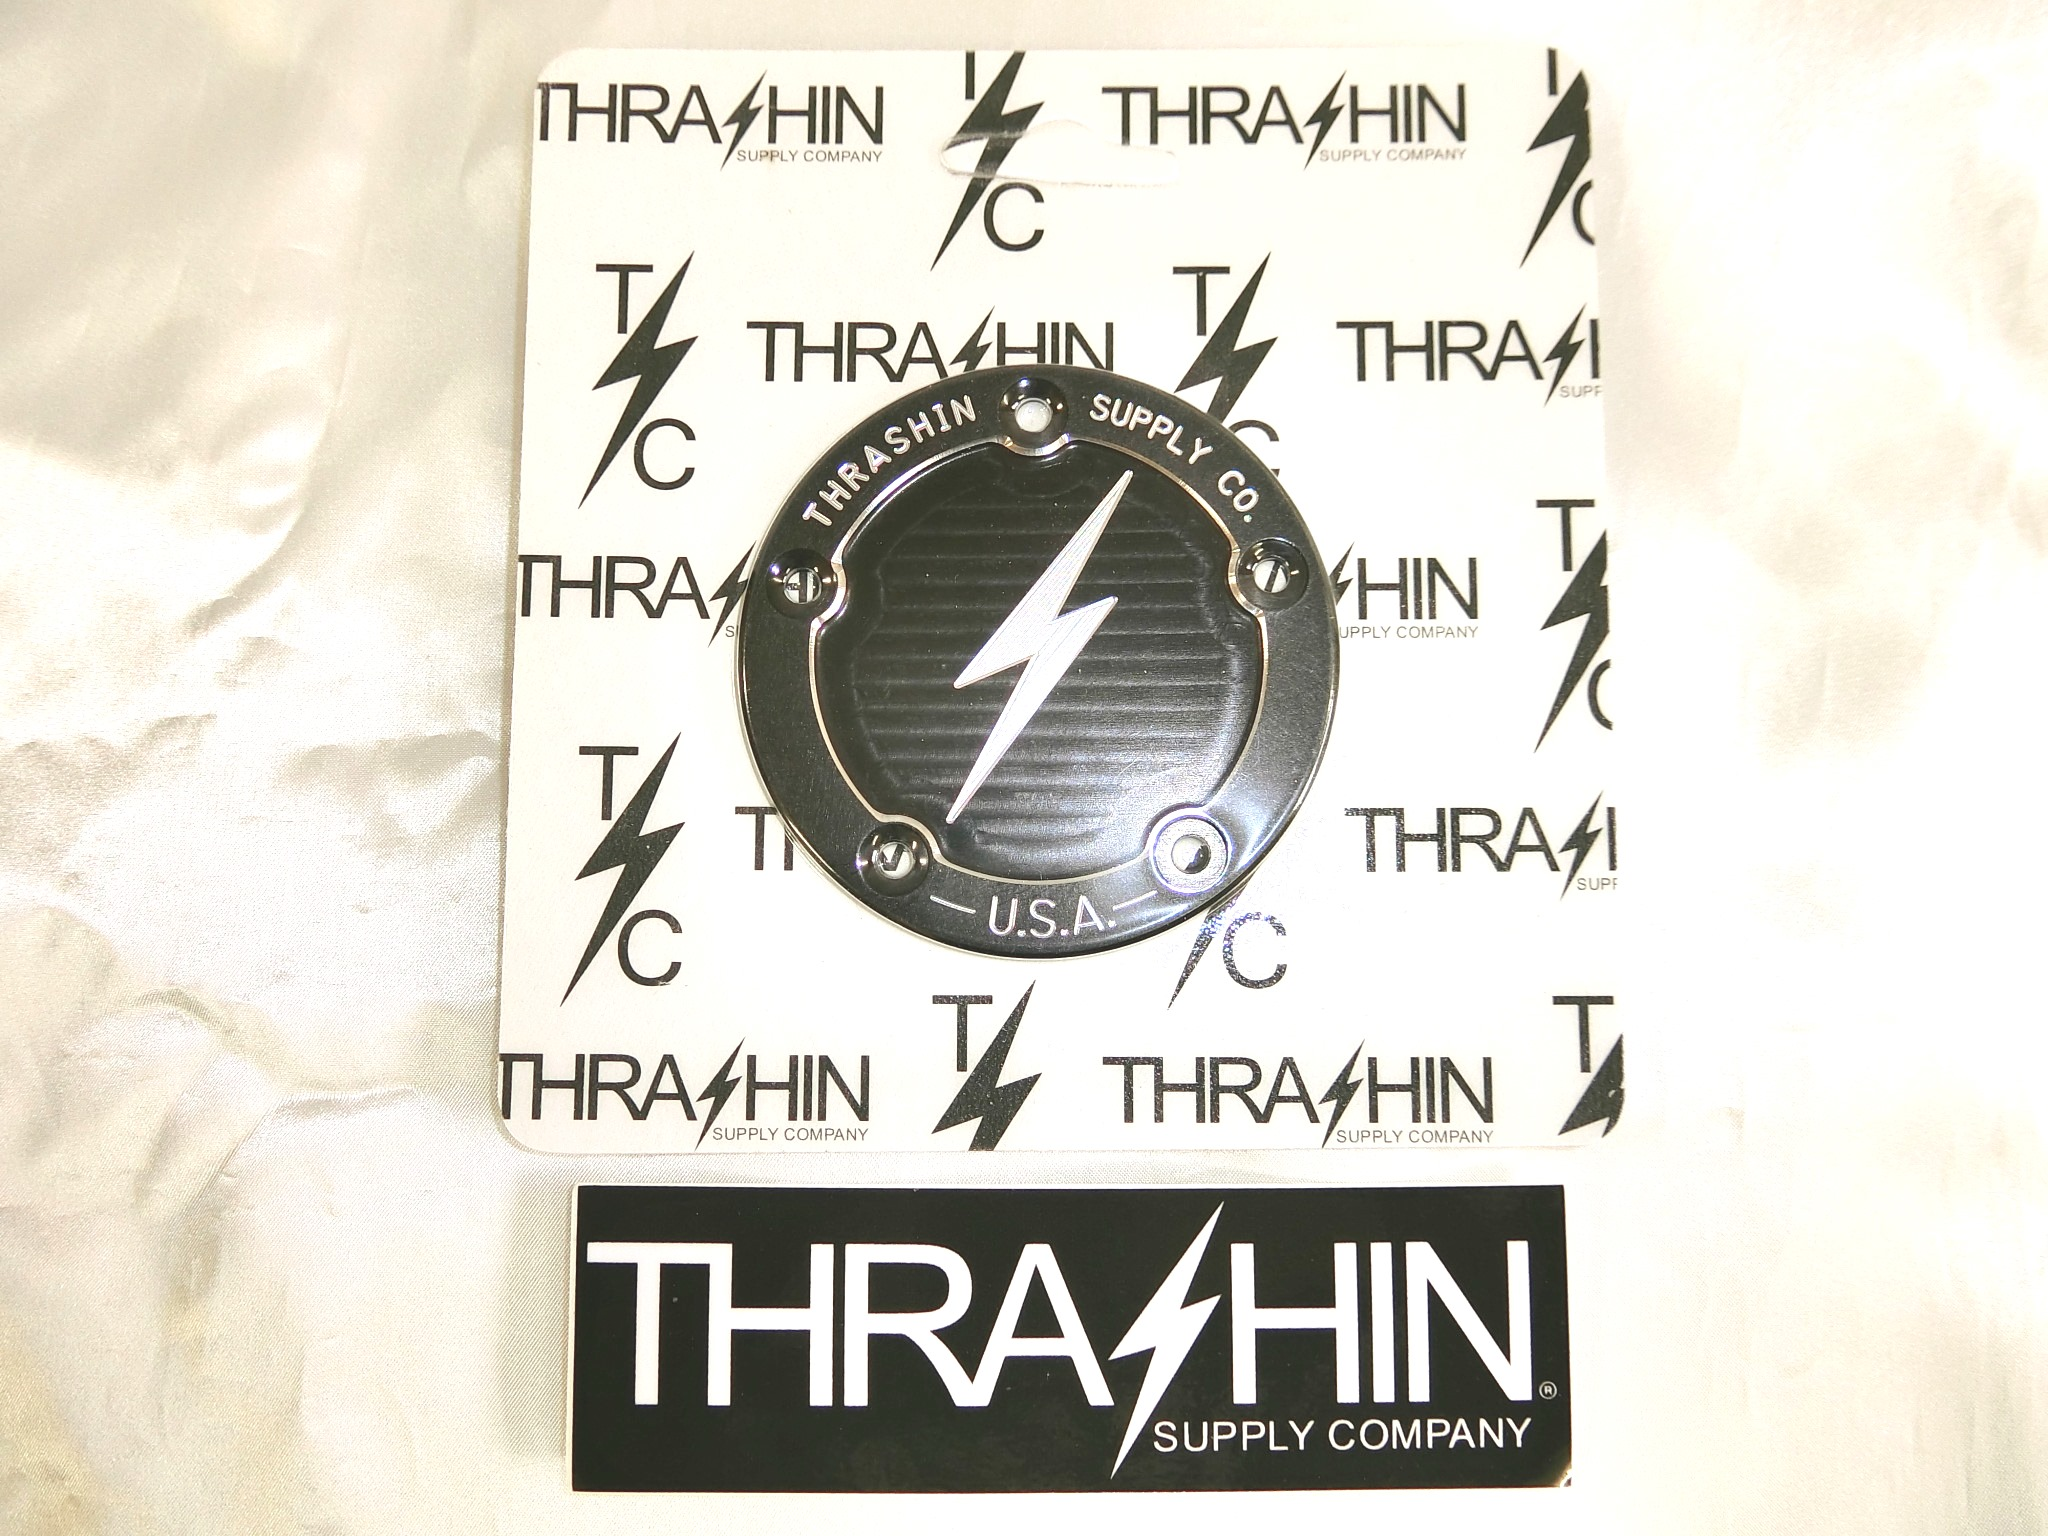 THRASHIN SUPPLY・TC用★Dishd ポイントカバーBL